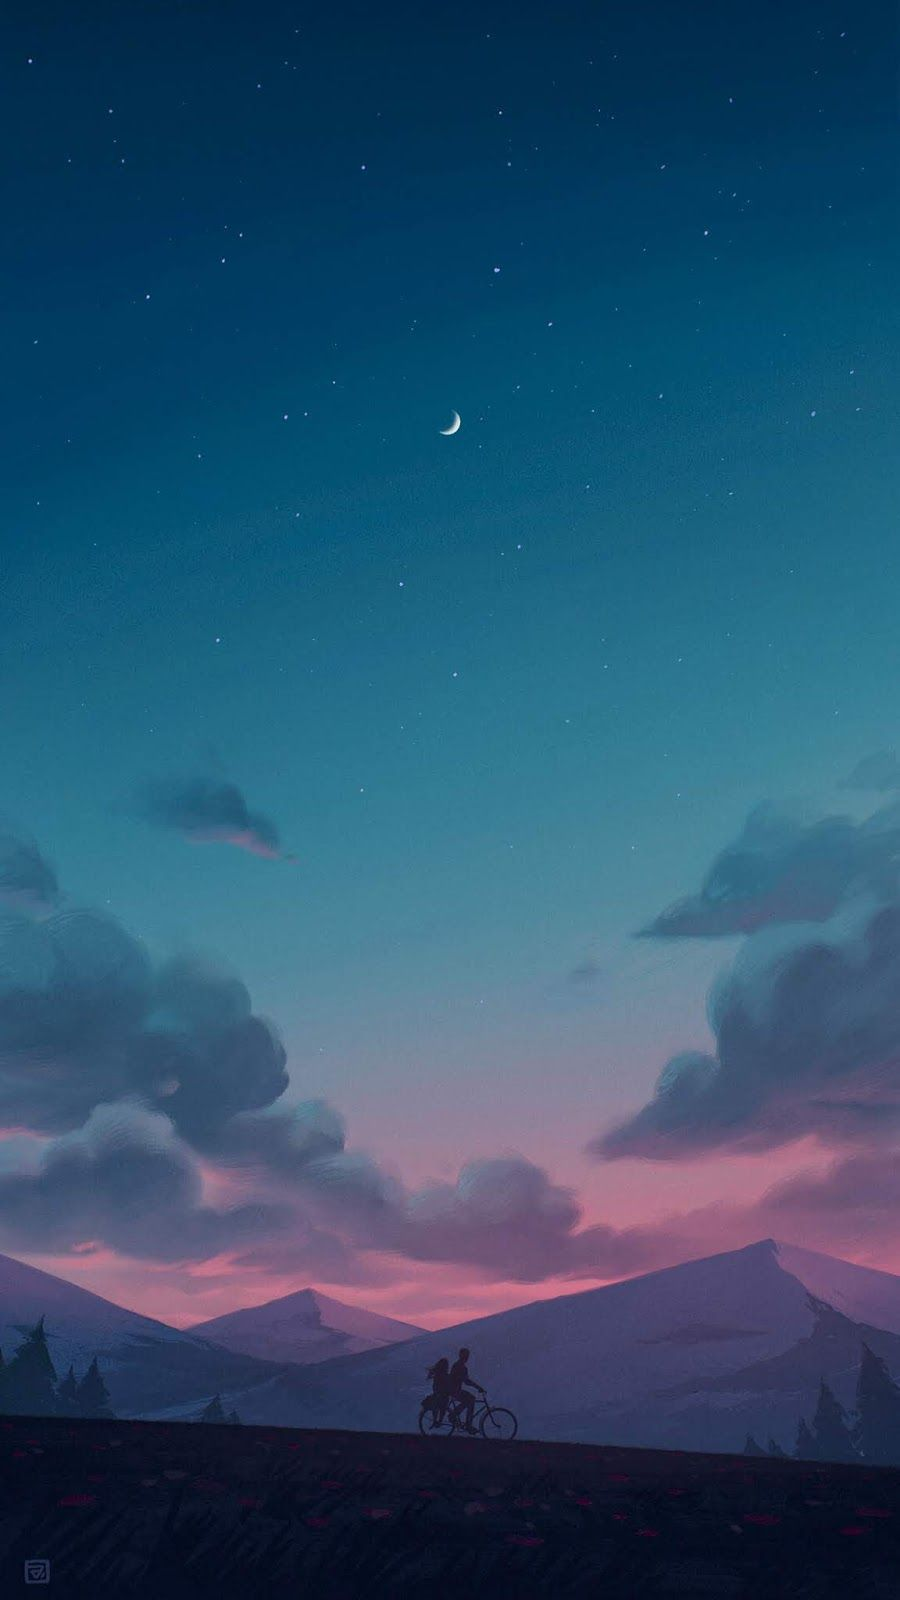 Calm Night Wallpaper Iphone Android Background Followme Scenery Wallpaper Anime Scenery Wallpaper Anime Scenery